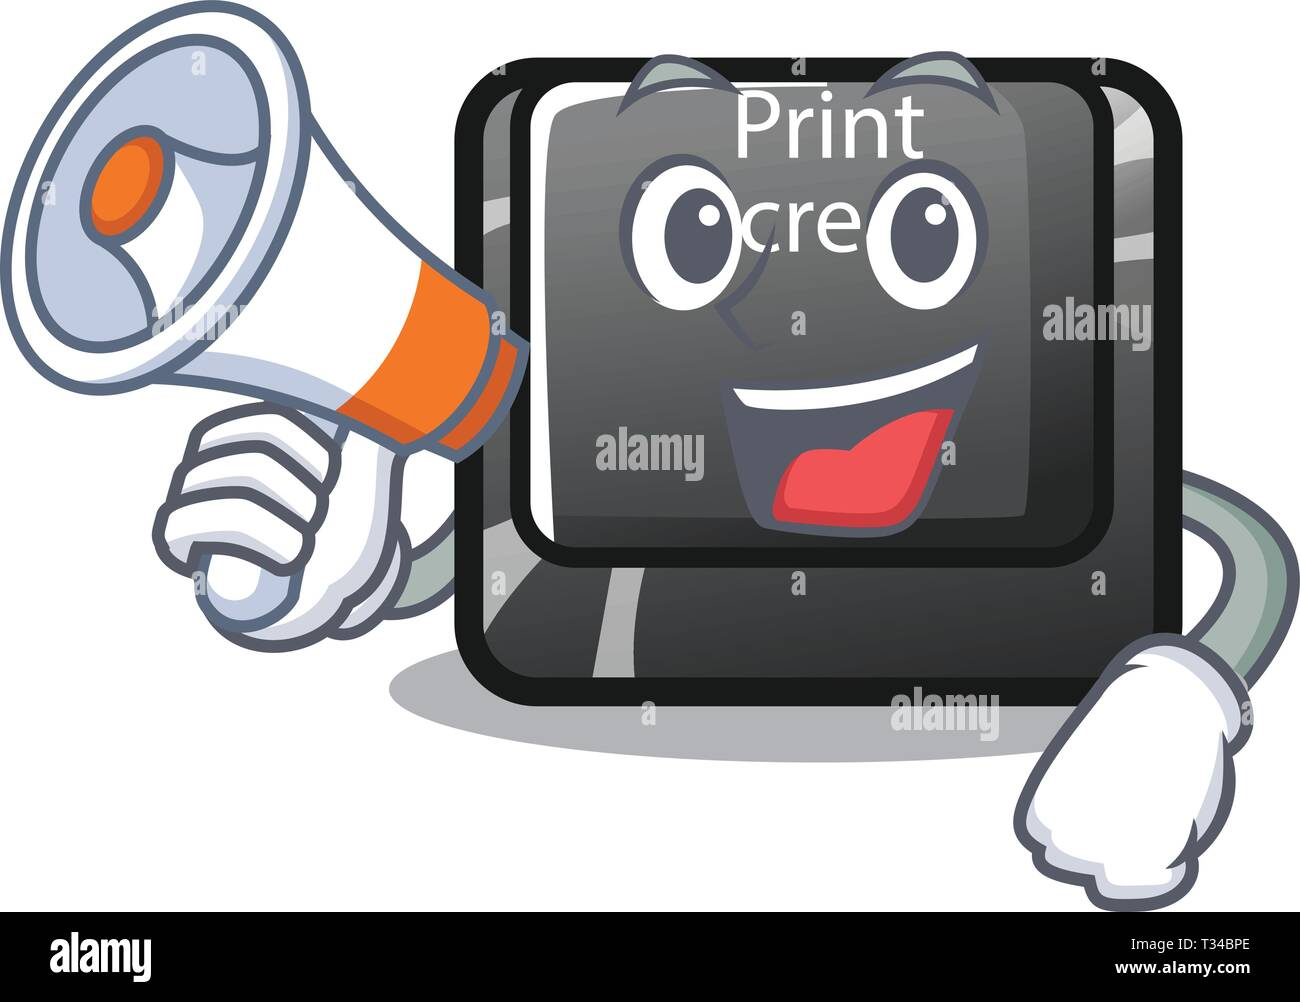 With megaphone button print screen the computer character - Stock Image